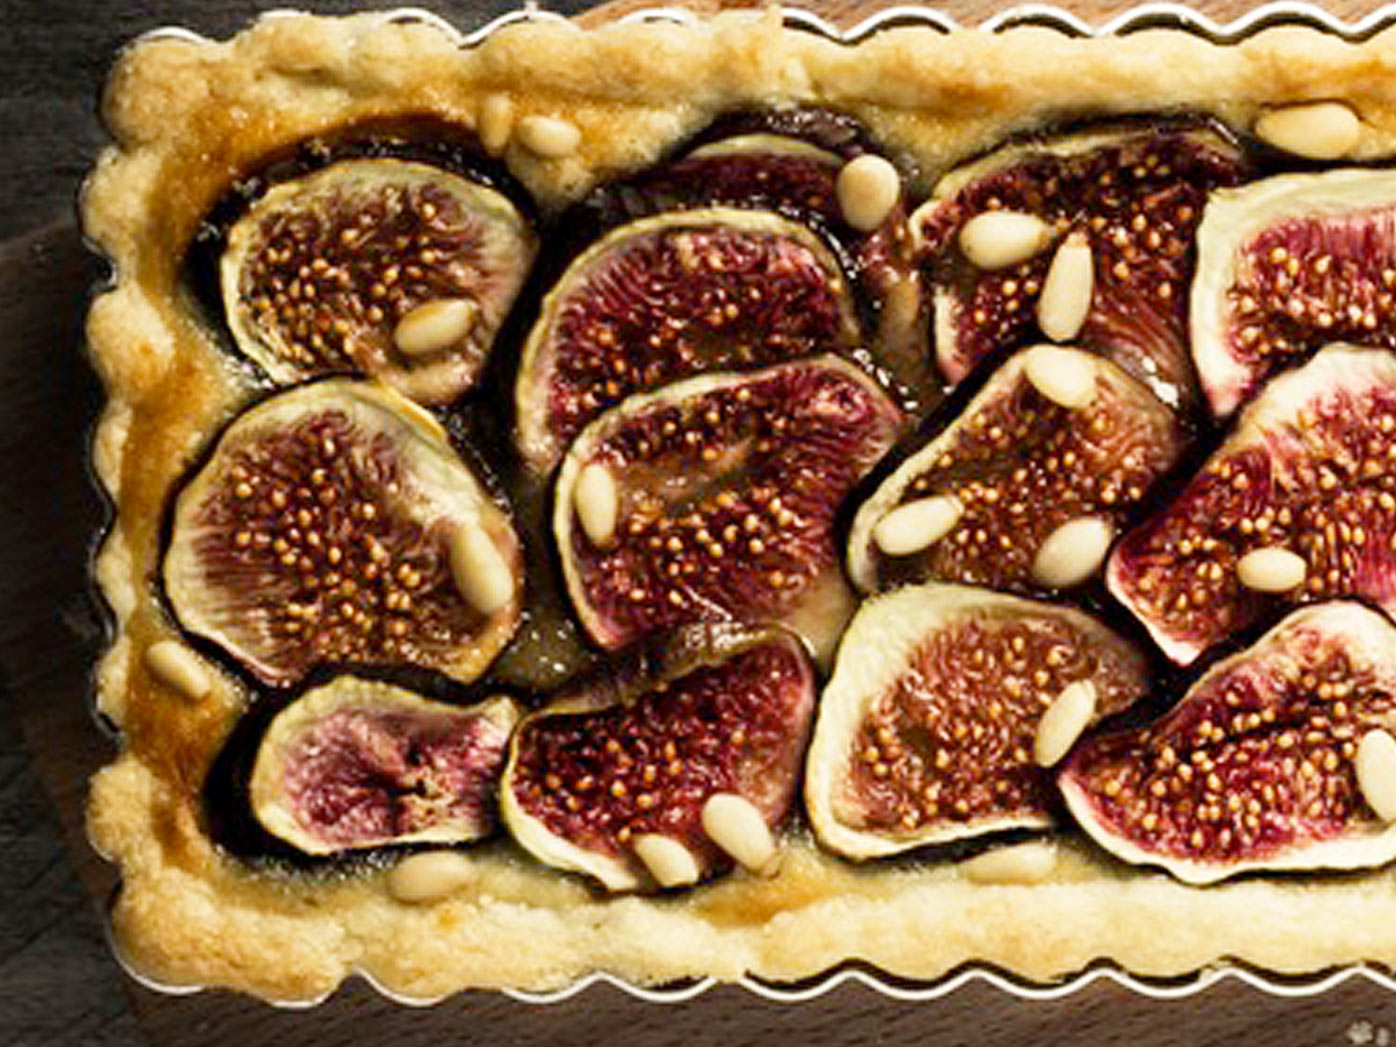 Fig tart with currants and pine nuts